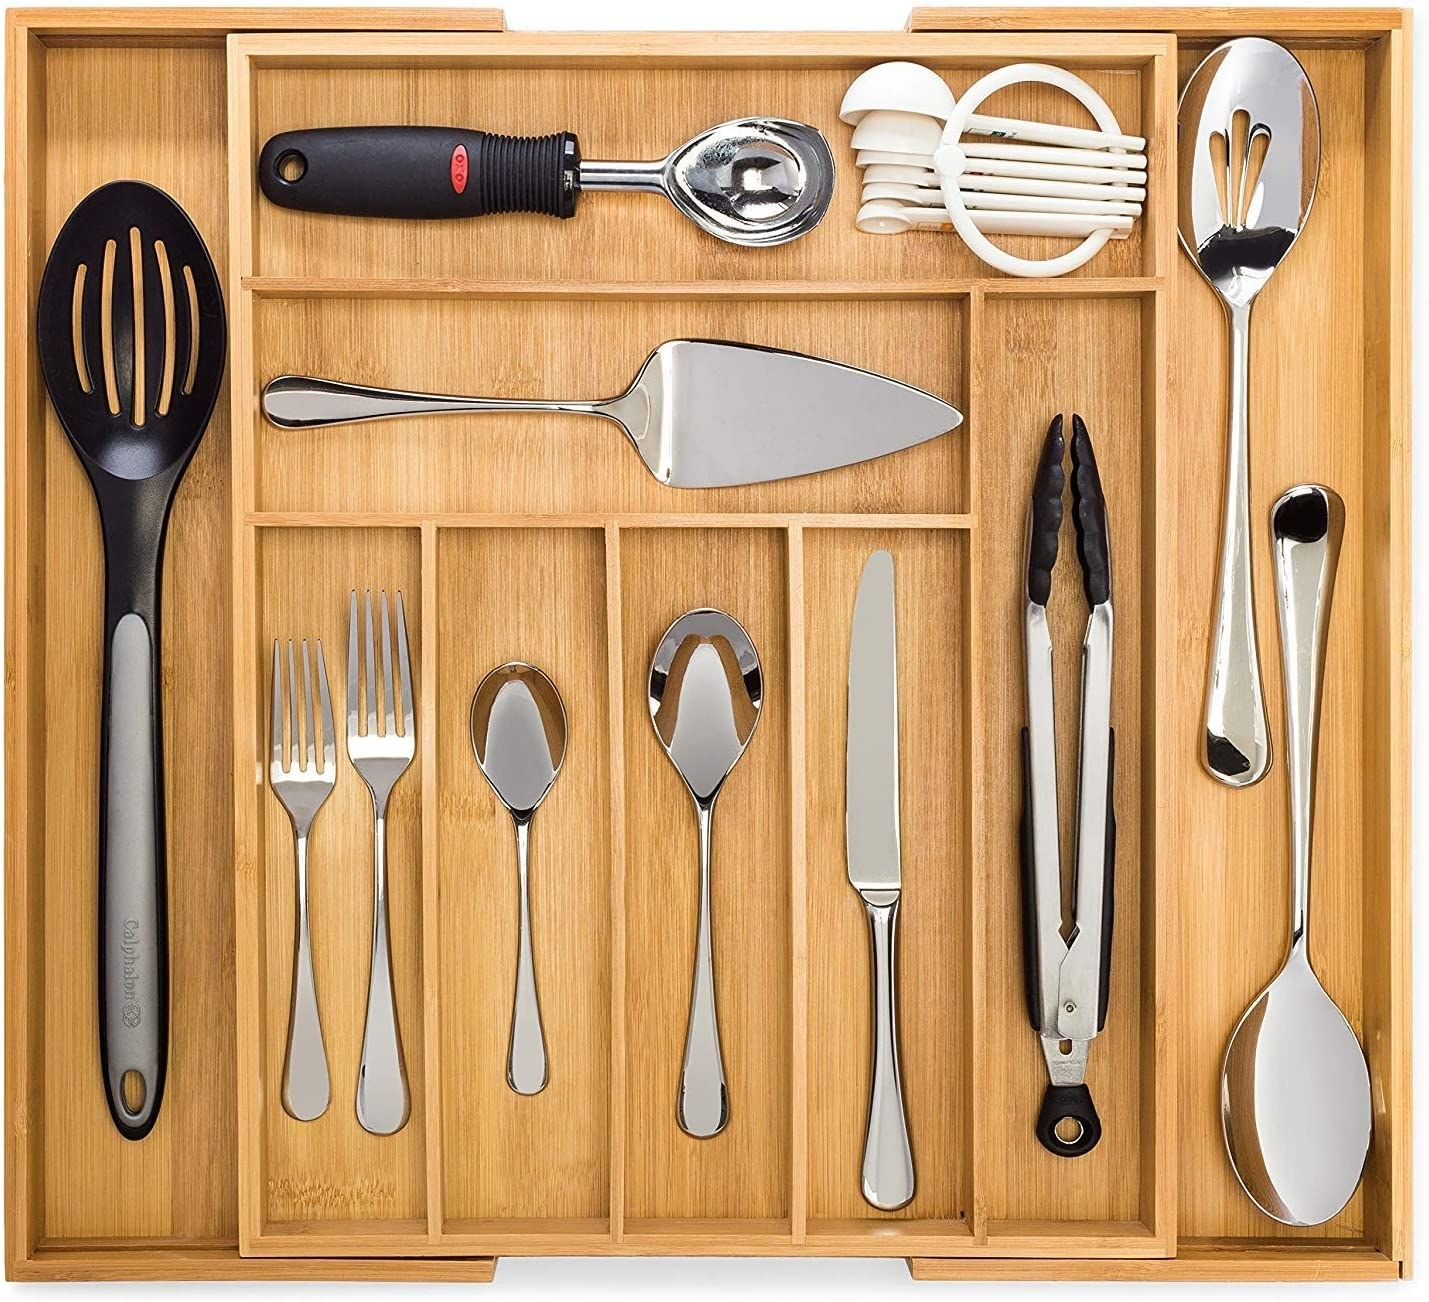 Bamboo utensil organizer partially expanded